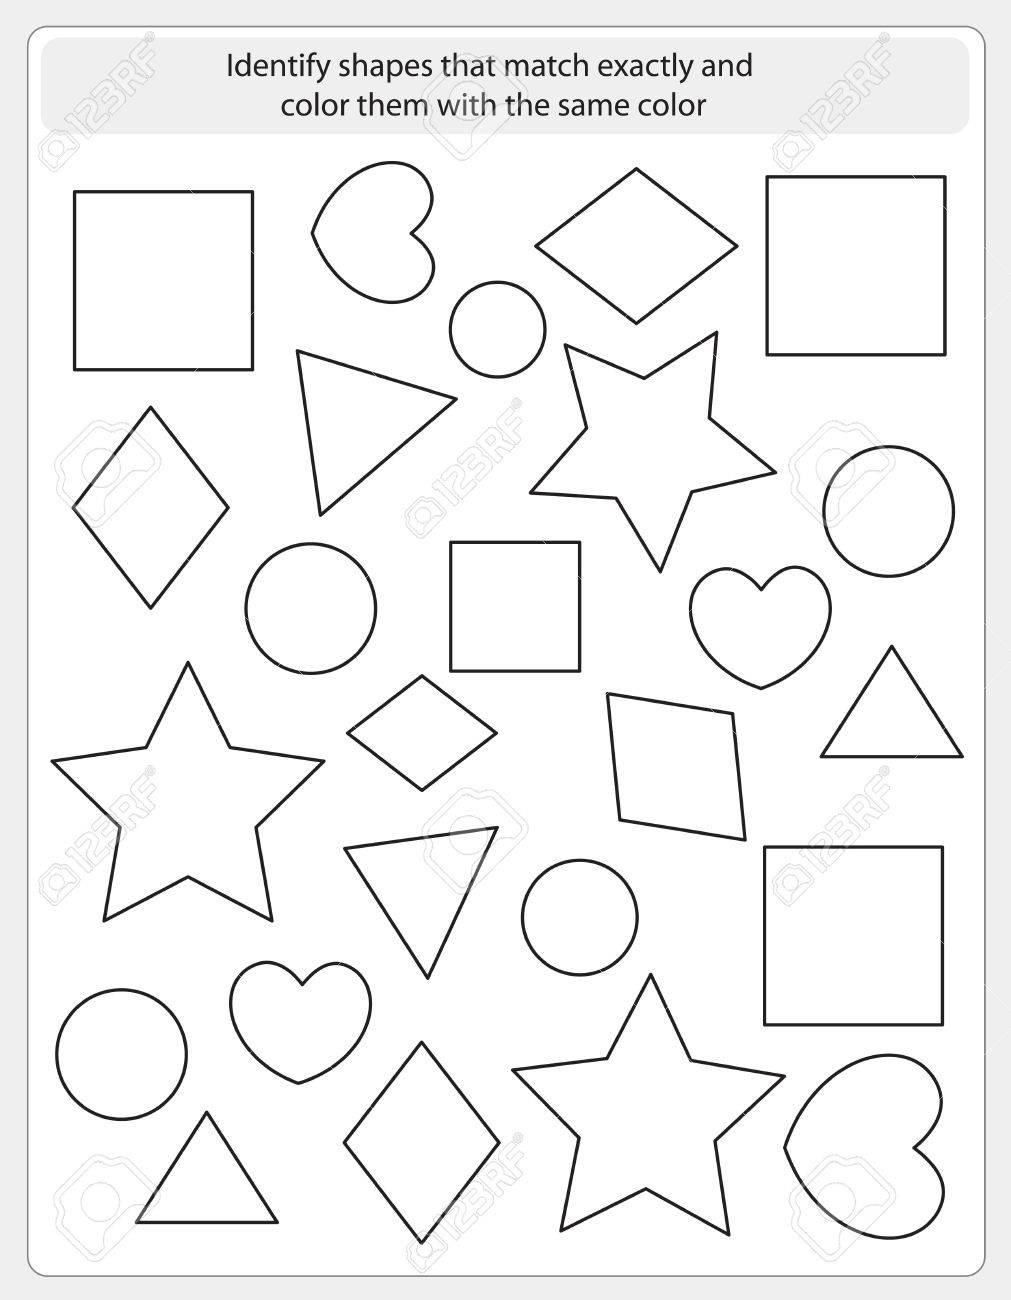 Kids Worksheet With Shapes To Match And Color Same Shape Royalty ...